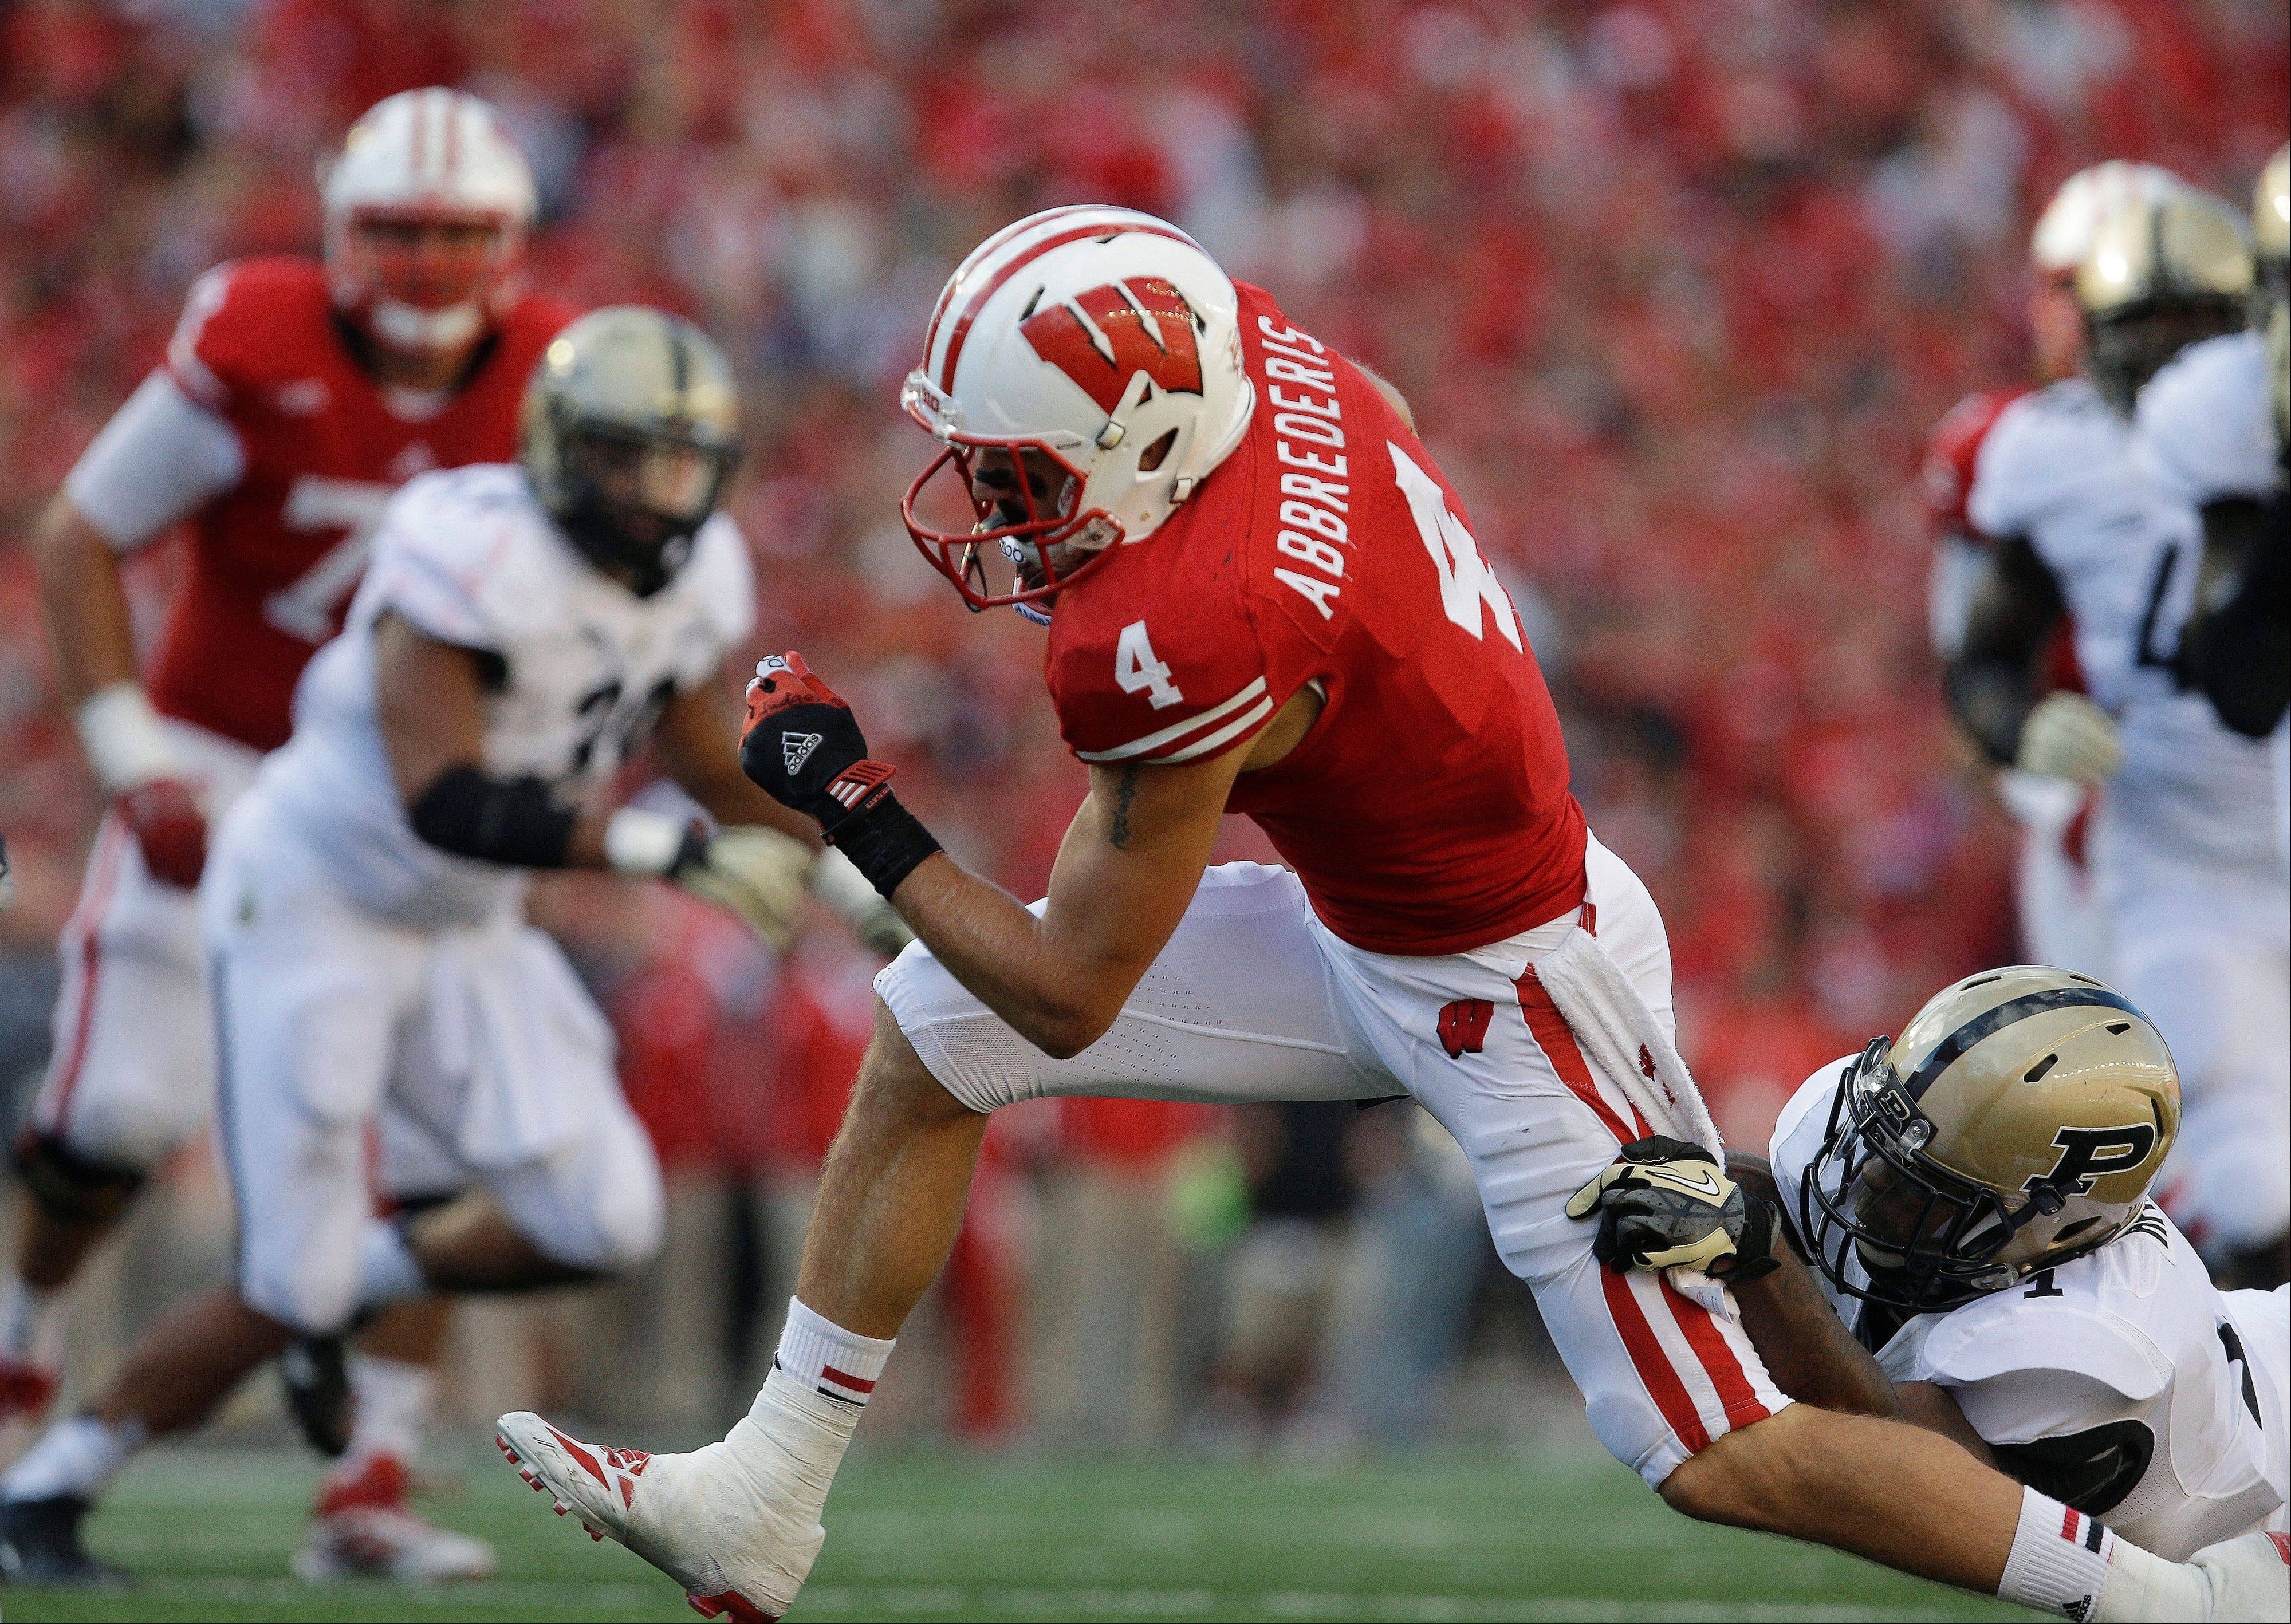 Wisconsin�s Jared Abbrederis runs with a reception during a game against Purdue in Madison, Wis. From scout team quarterback to indispensable senior receiver, Abbrederis has set a new standard for walk-ons at No. 19 Wisconsin.